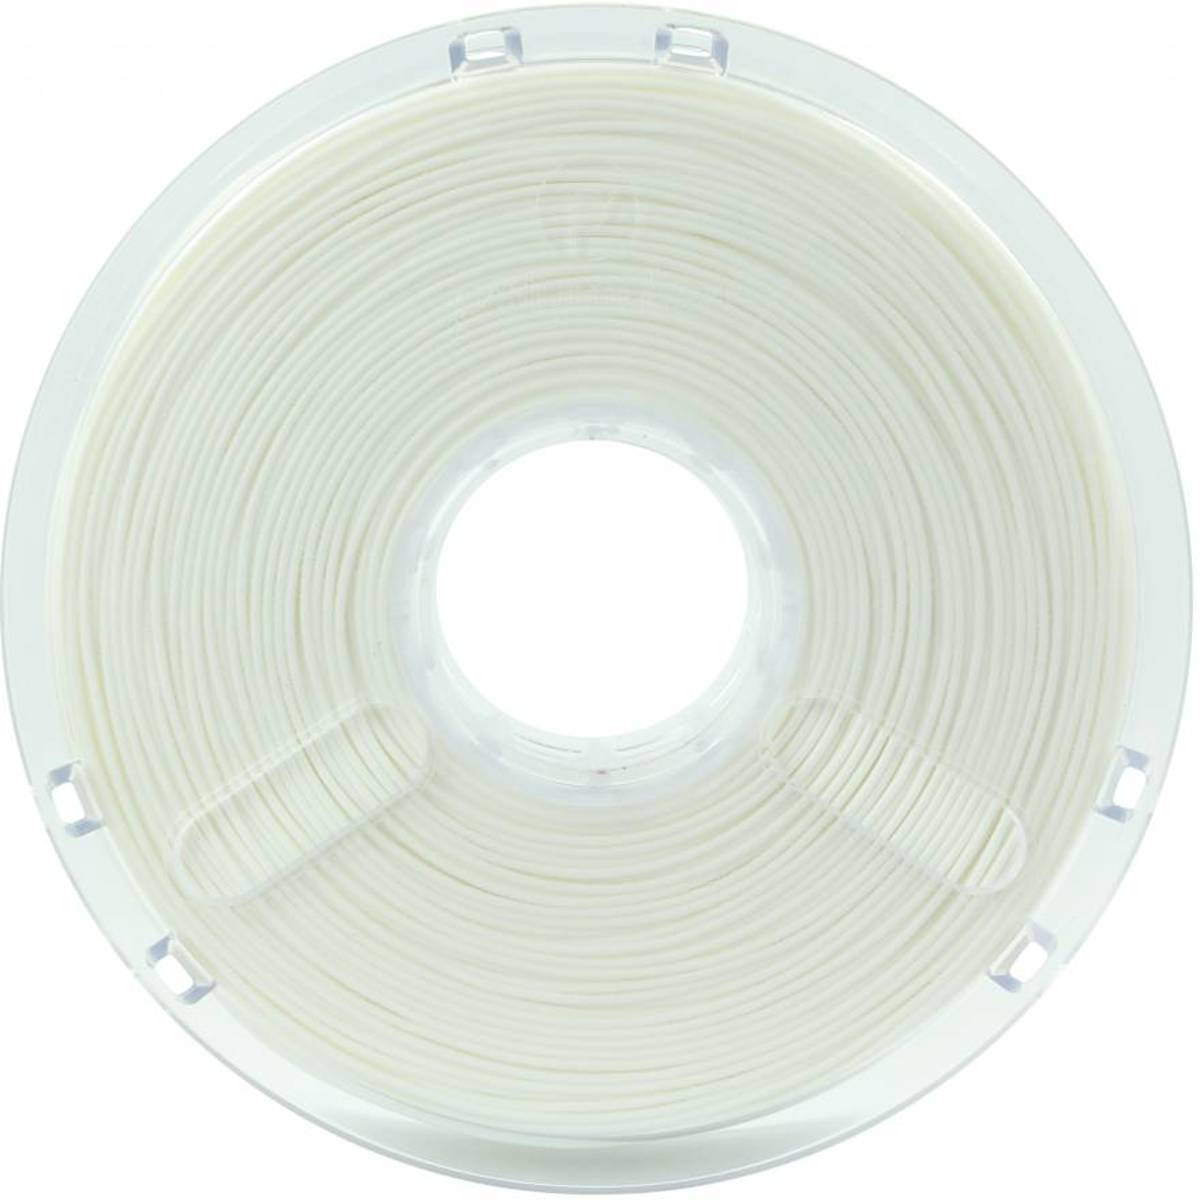 Filament voor 3D-printer PolyMax 2.85 mm 0.75 kg Jam Free Technology - True White